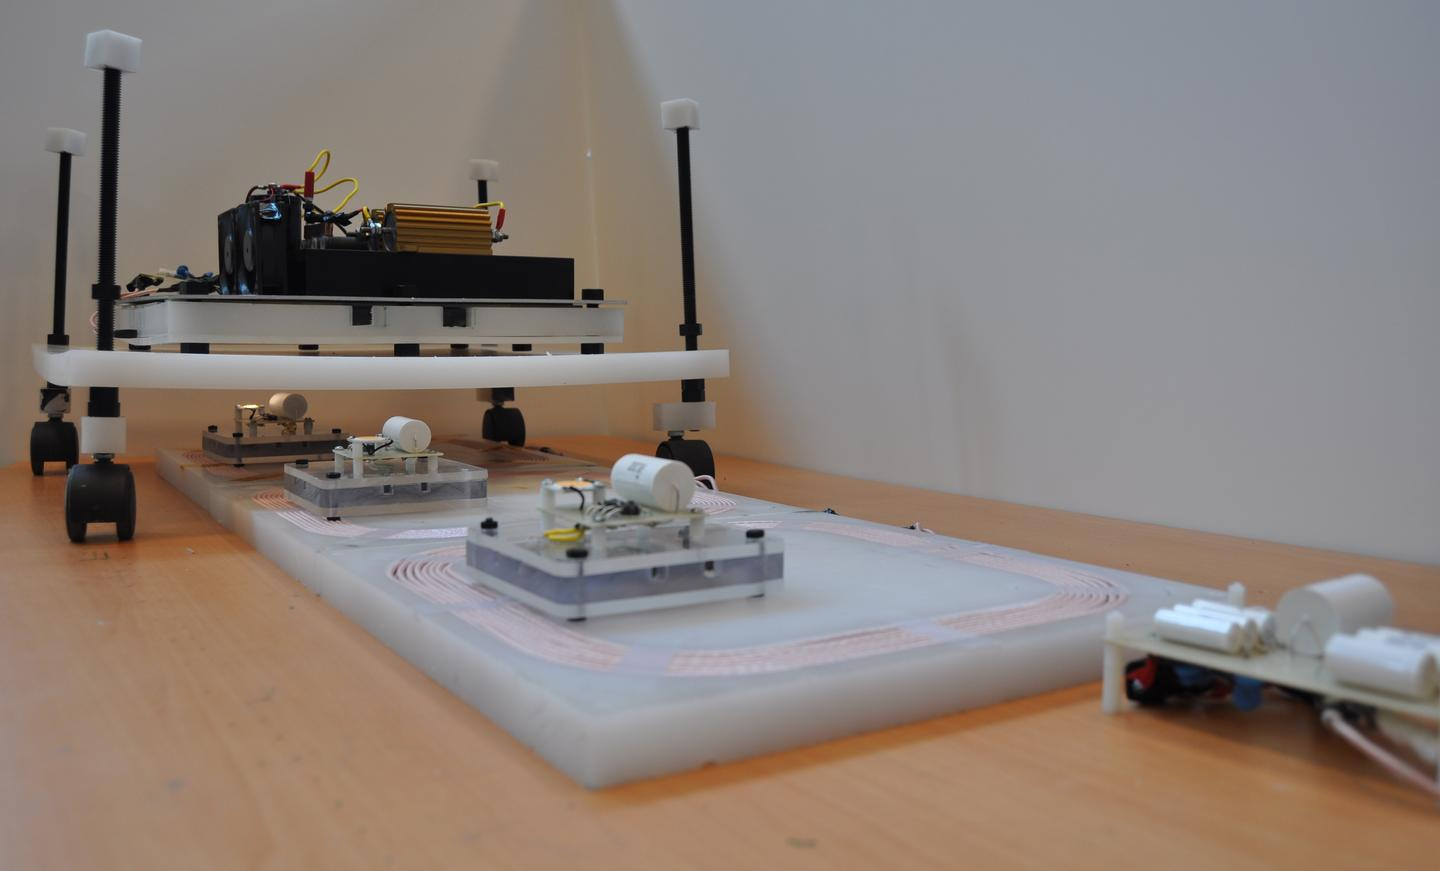 The small-scale prototype of the system